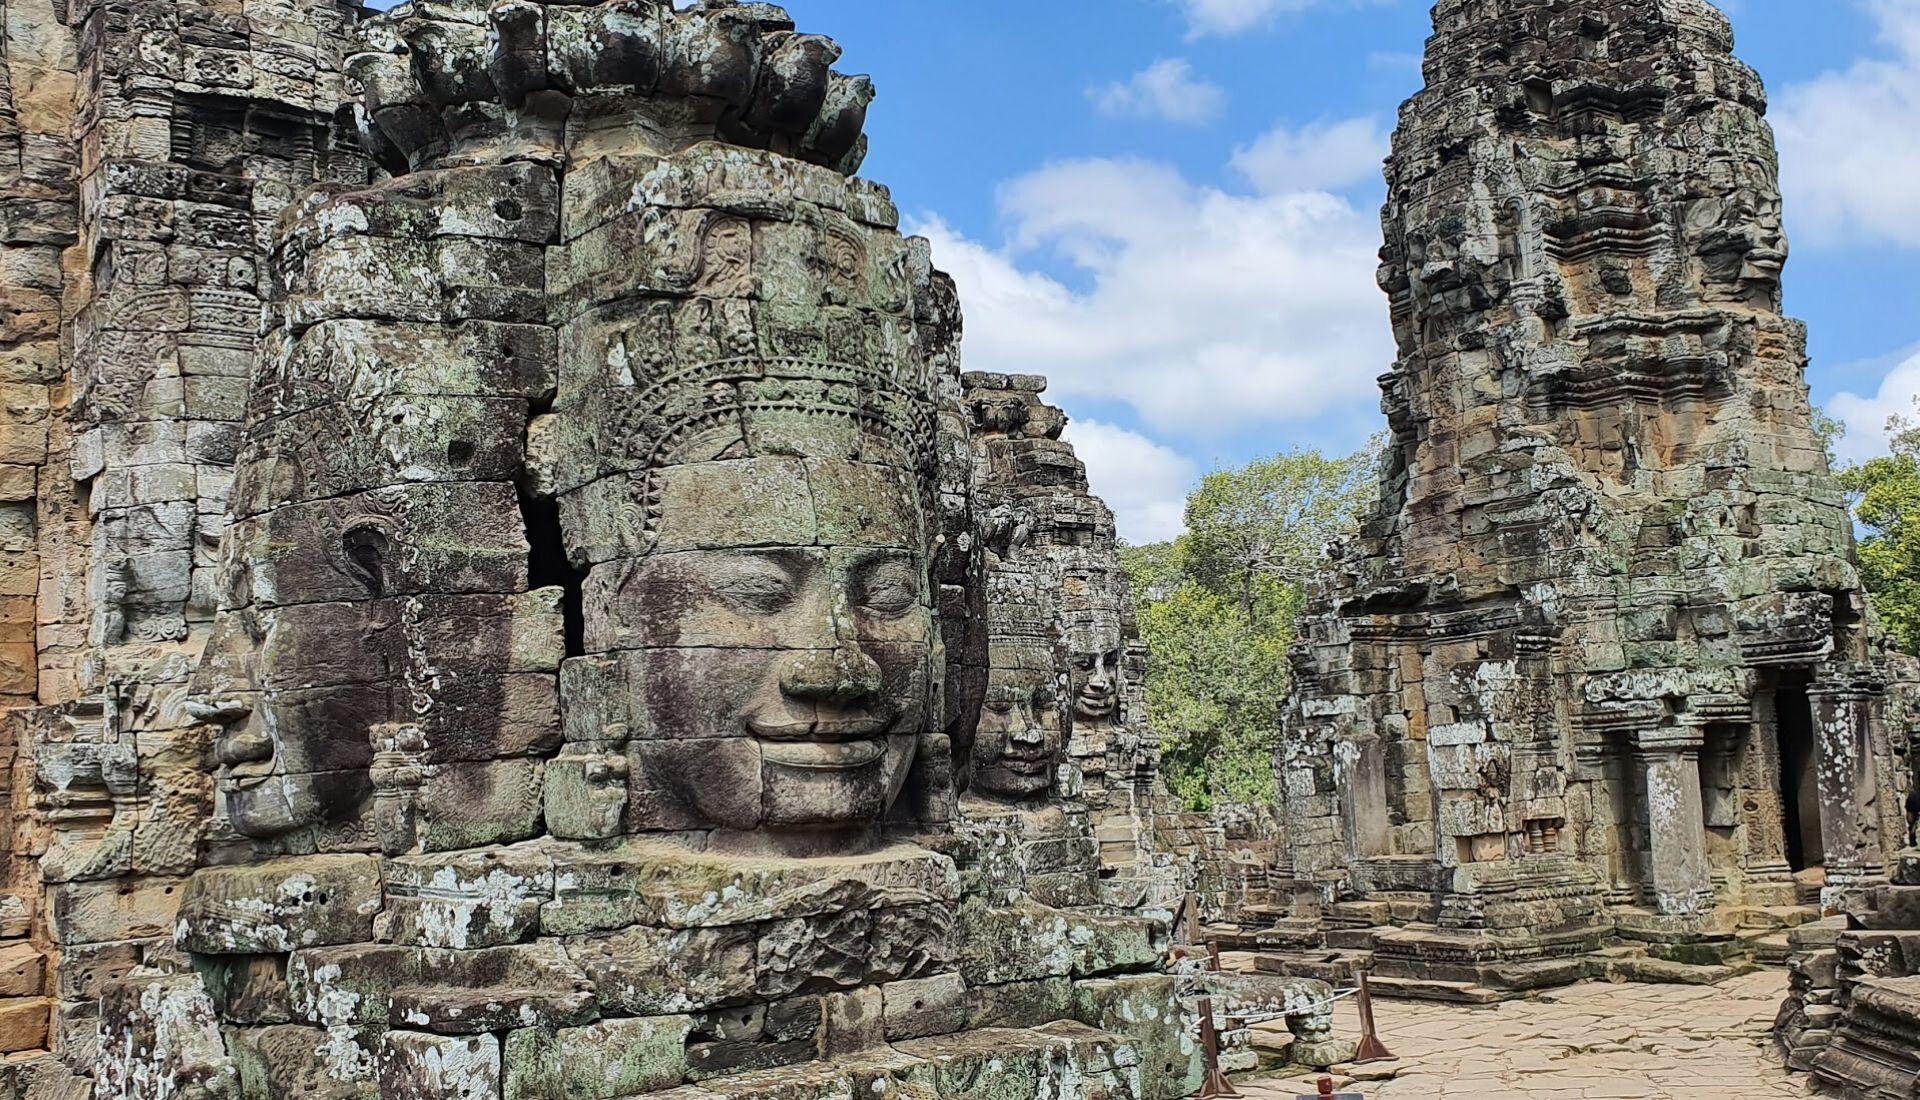 late 12th century Bayon Temple